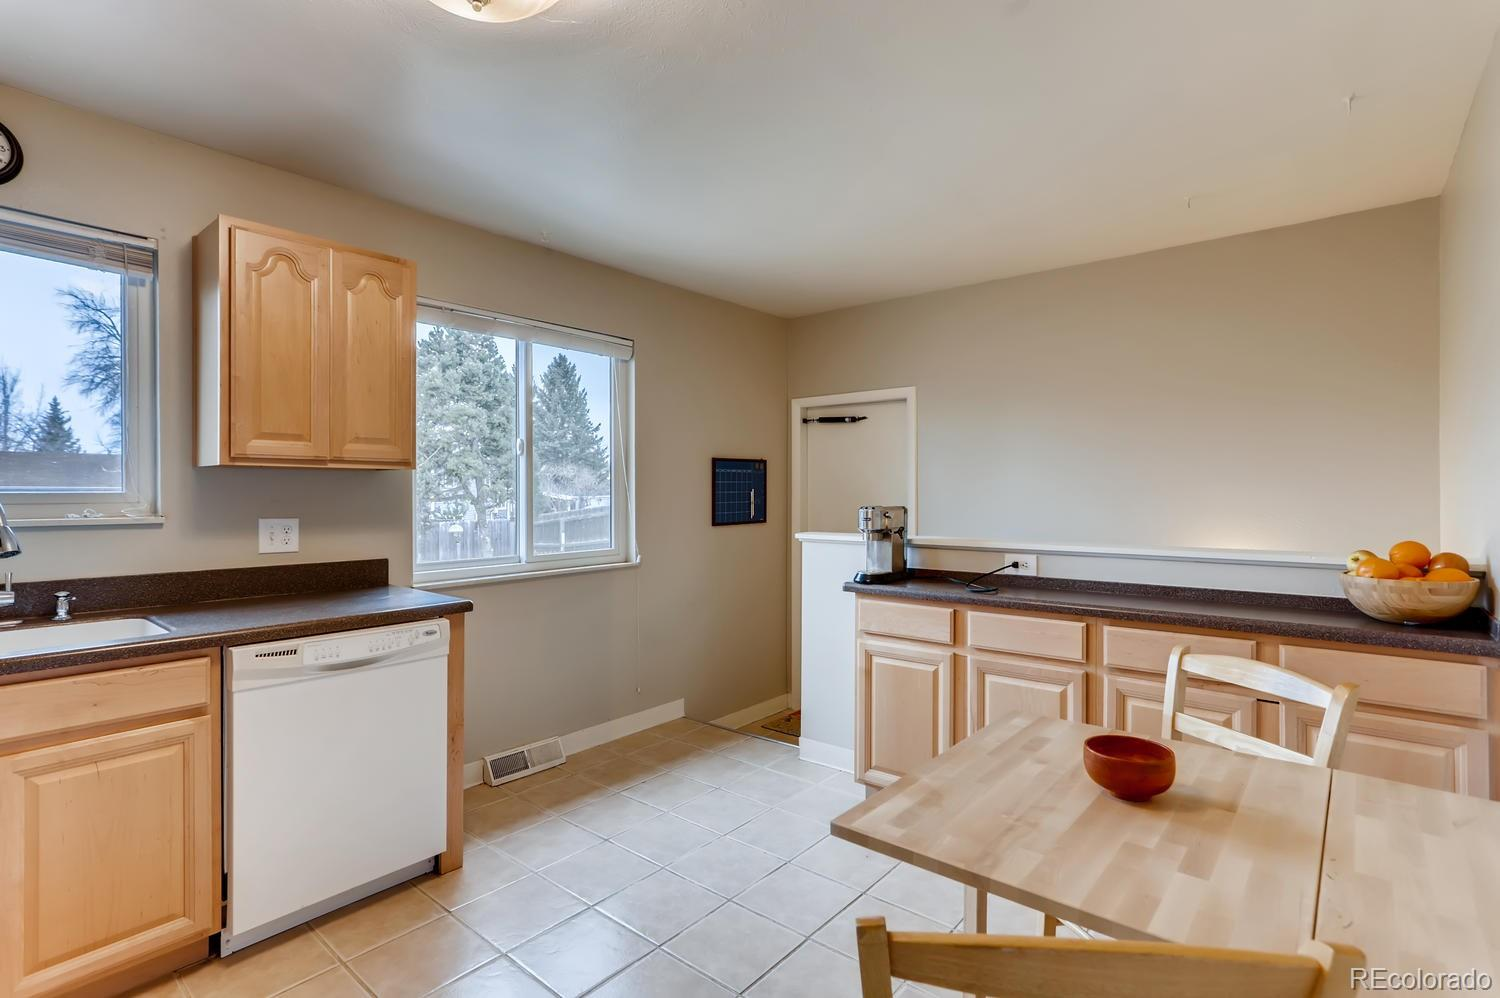 MLS# 6804031 - 6 - 10912 W 107th Place, Westminster, CO 80021